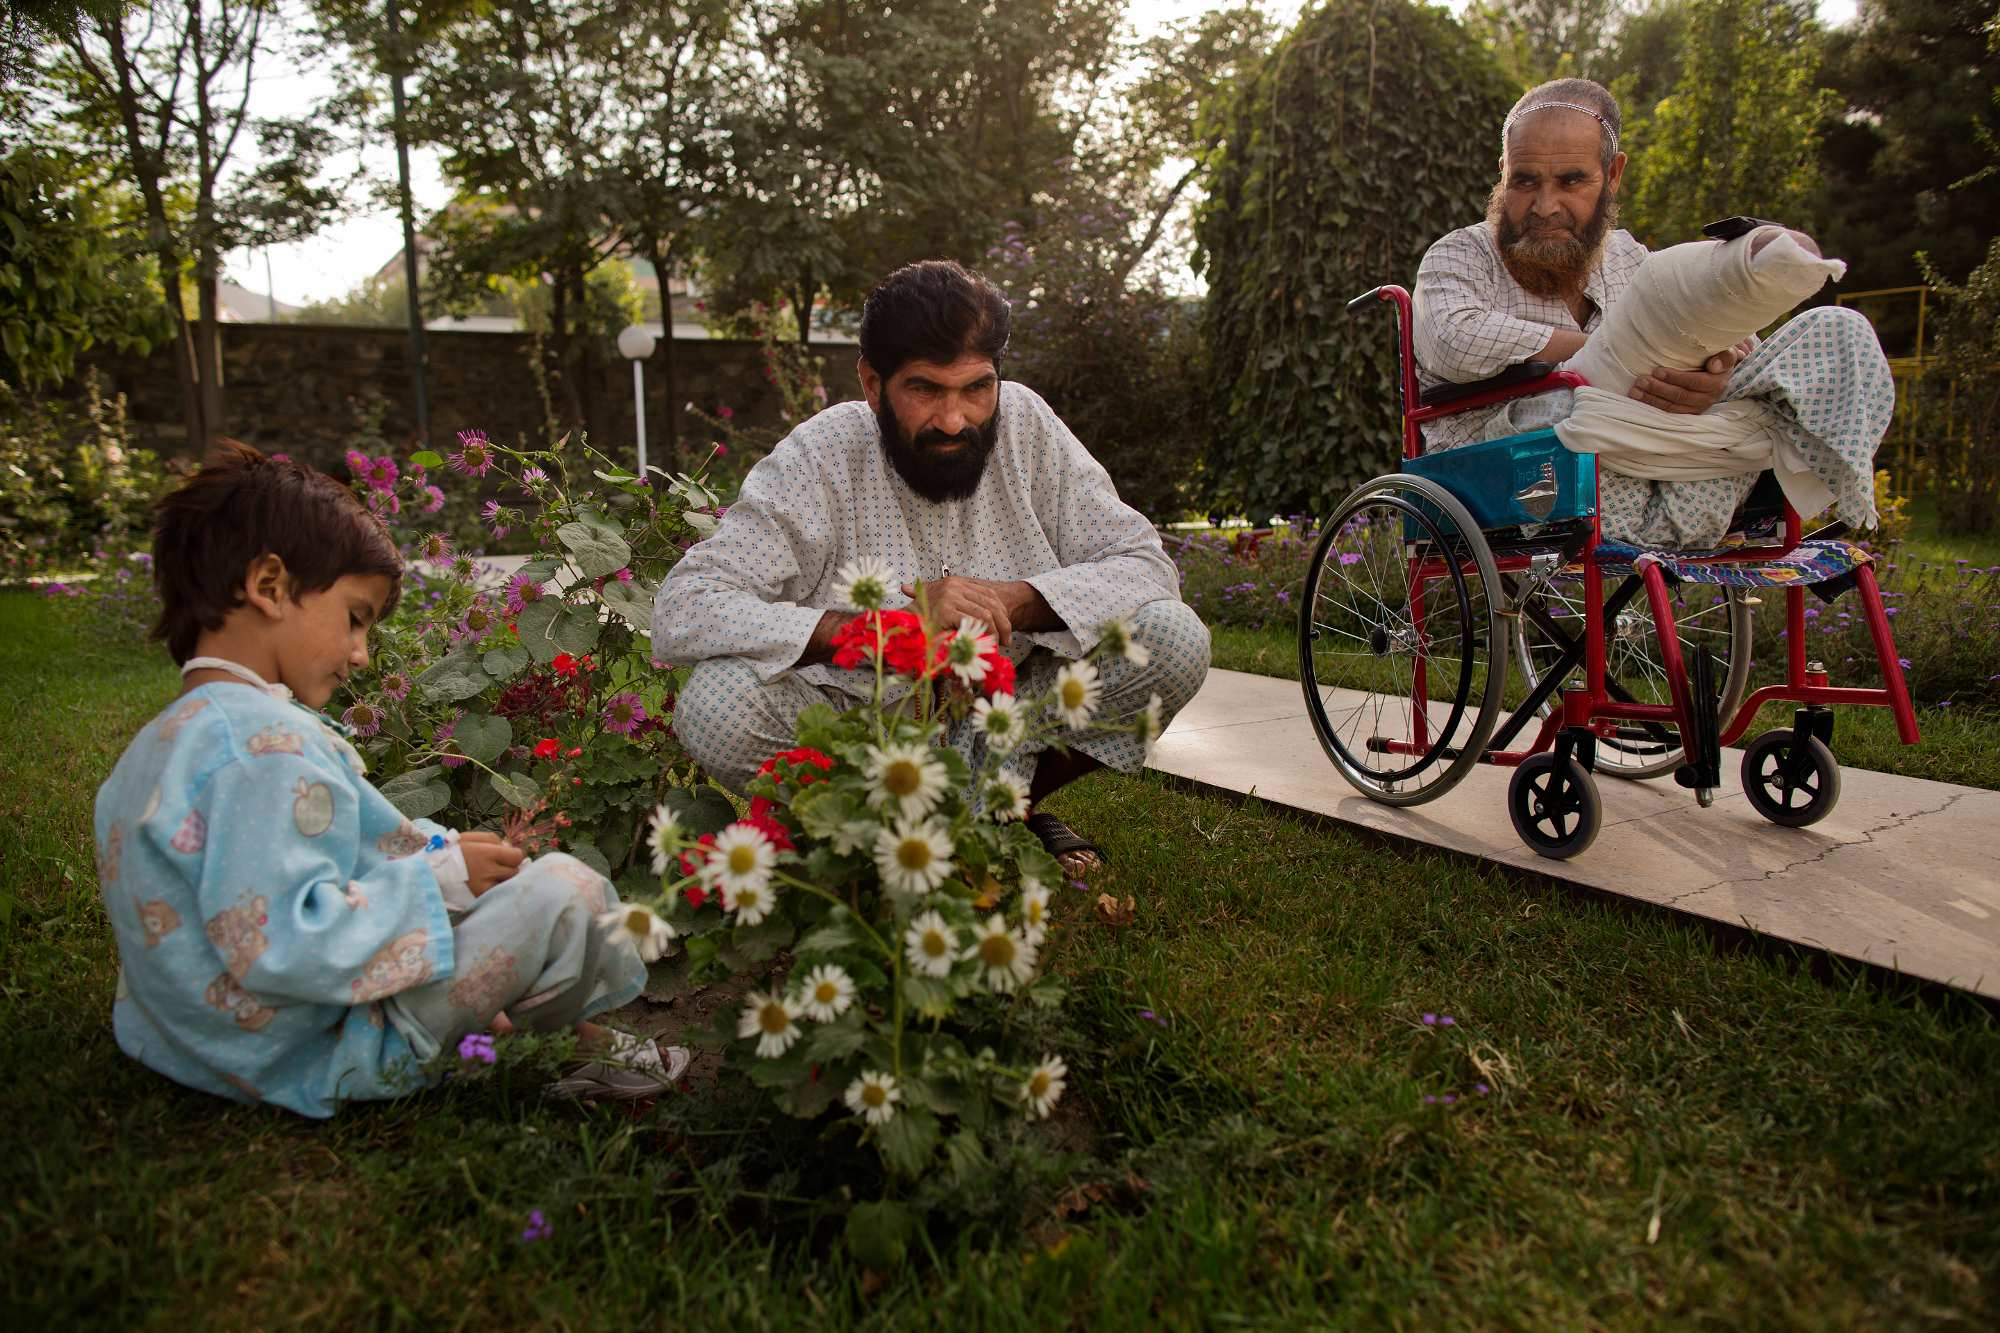 Noor Pacha, center, sits in the garden with his injured son, Noorullah, 7, left, as fellow patient Ab Ahad, 45, looks on.